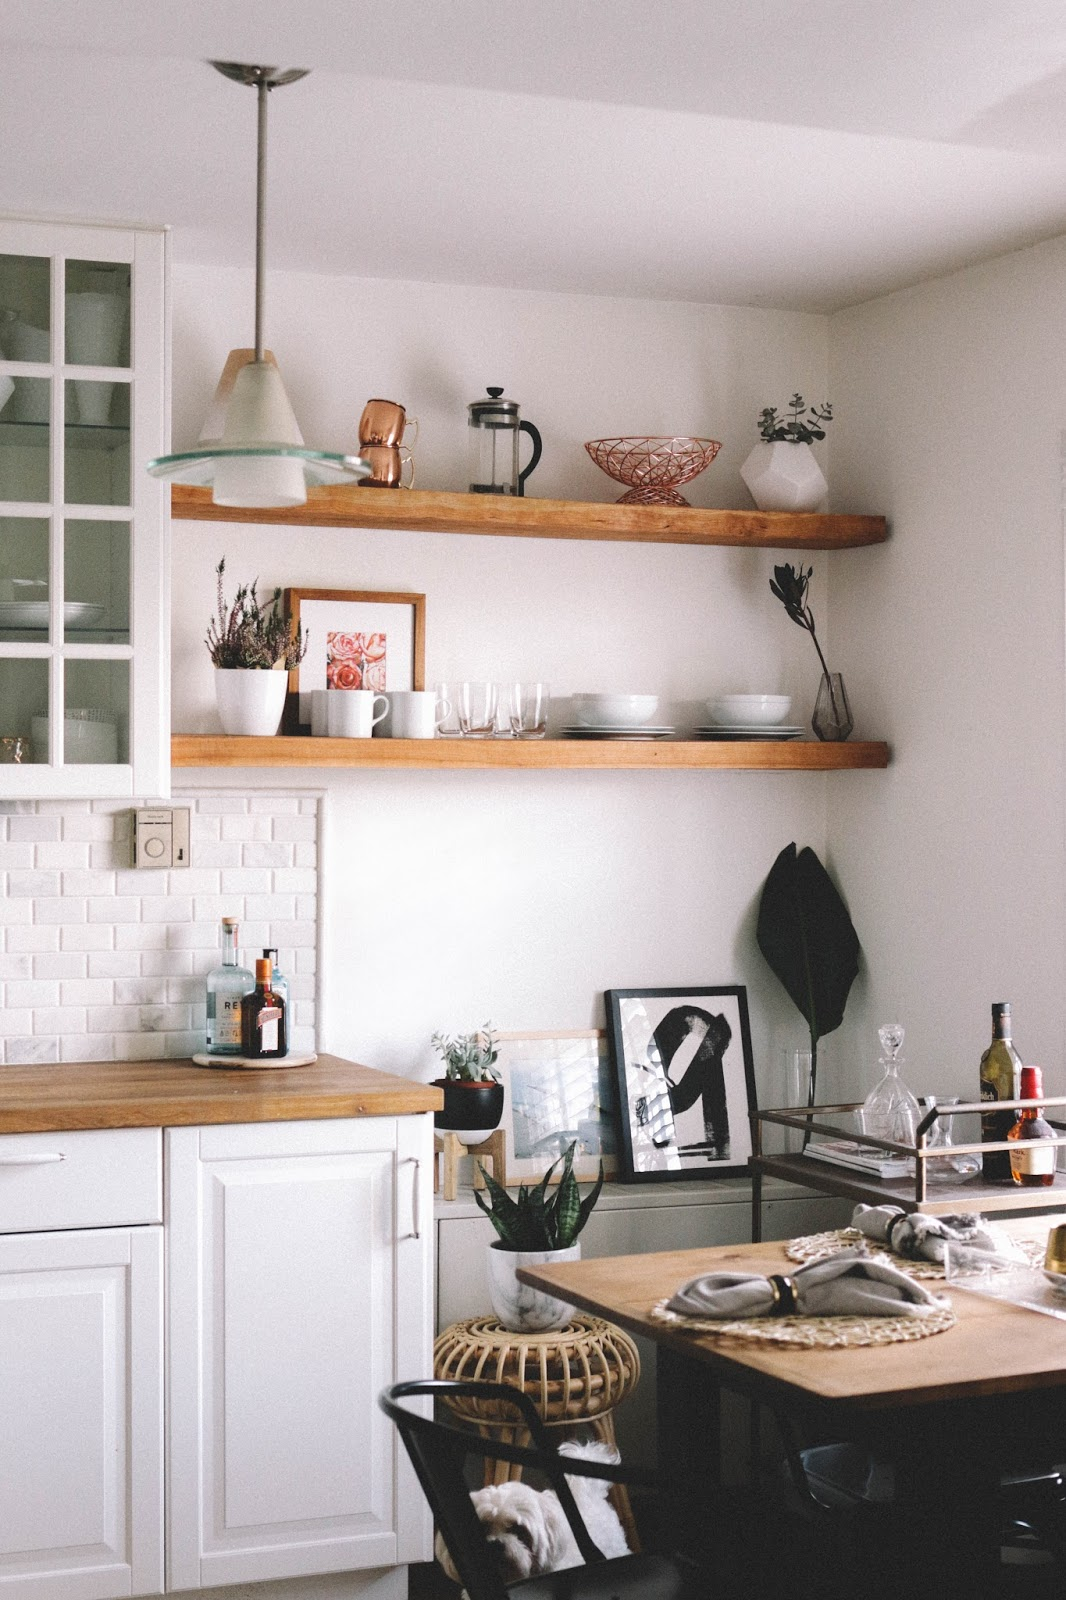 DIY: How To Custom Make Your Own Exposed Kitchen Shelves